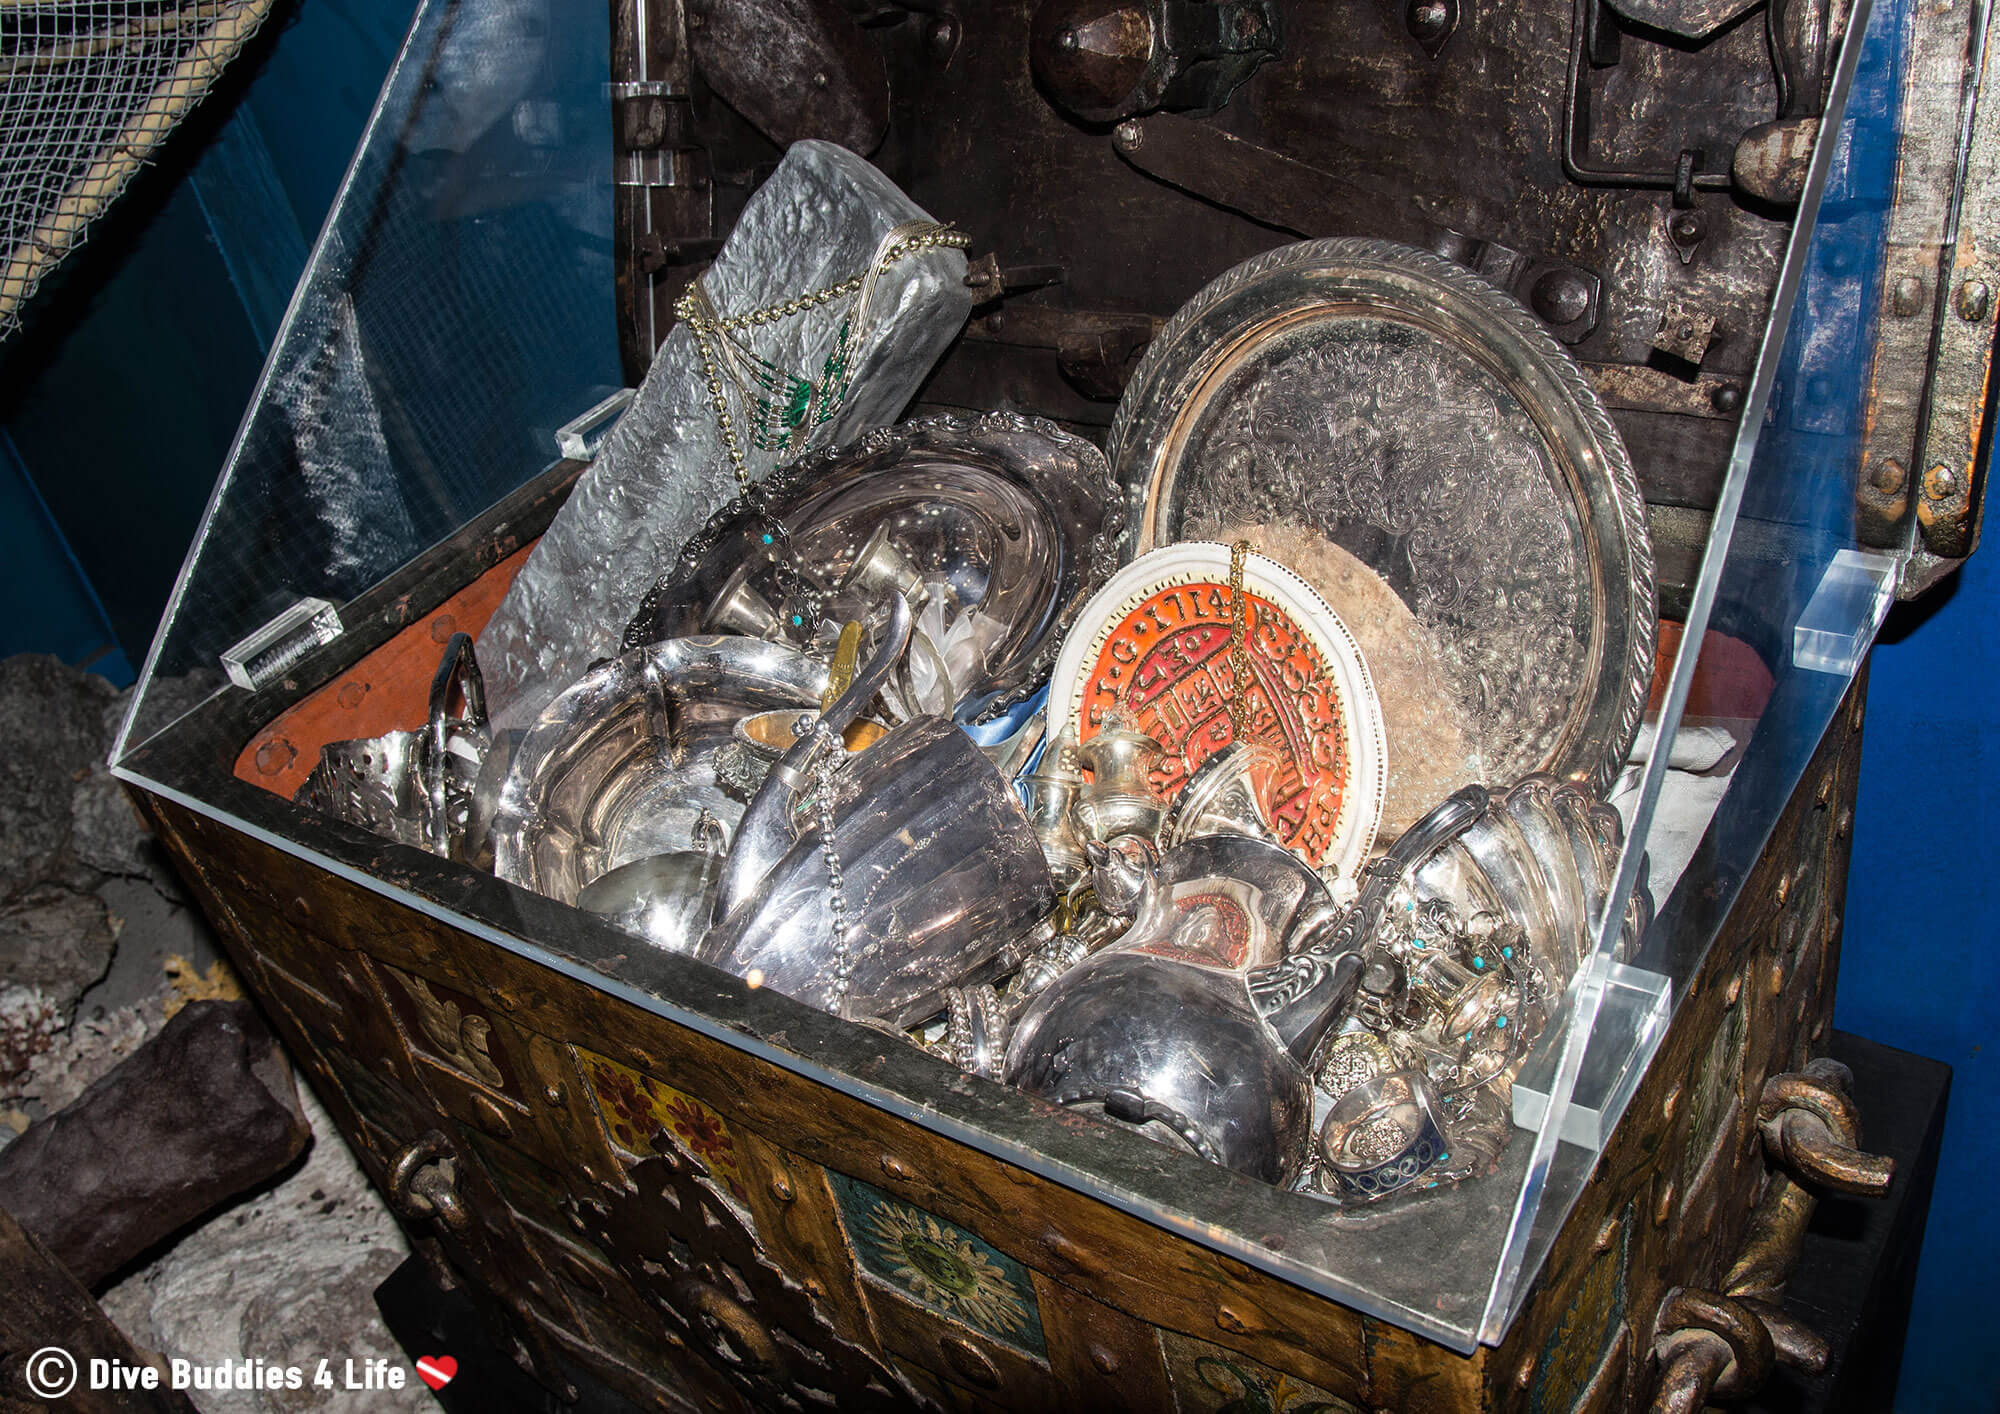 Treasure Chest In The History Of Diving Museum, Florida Keys